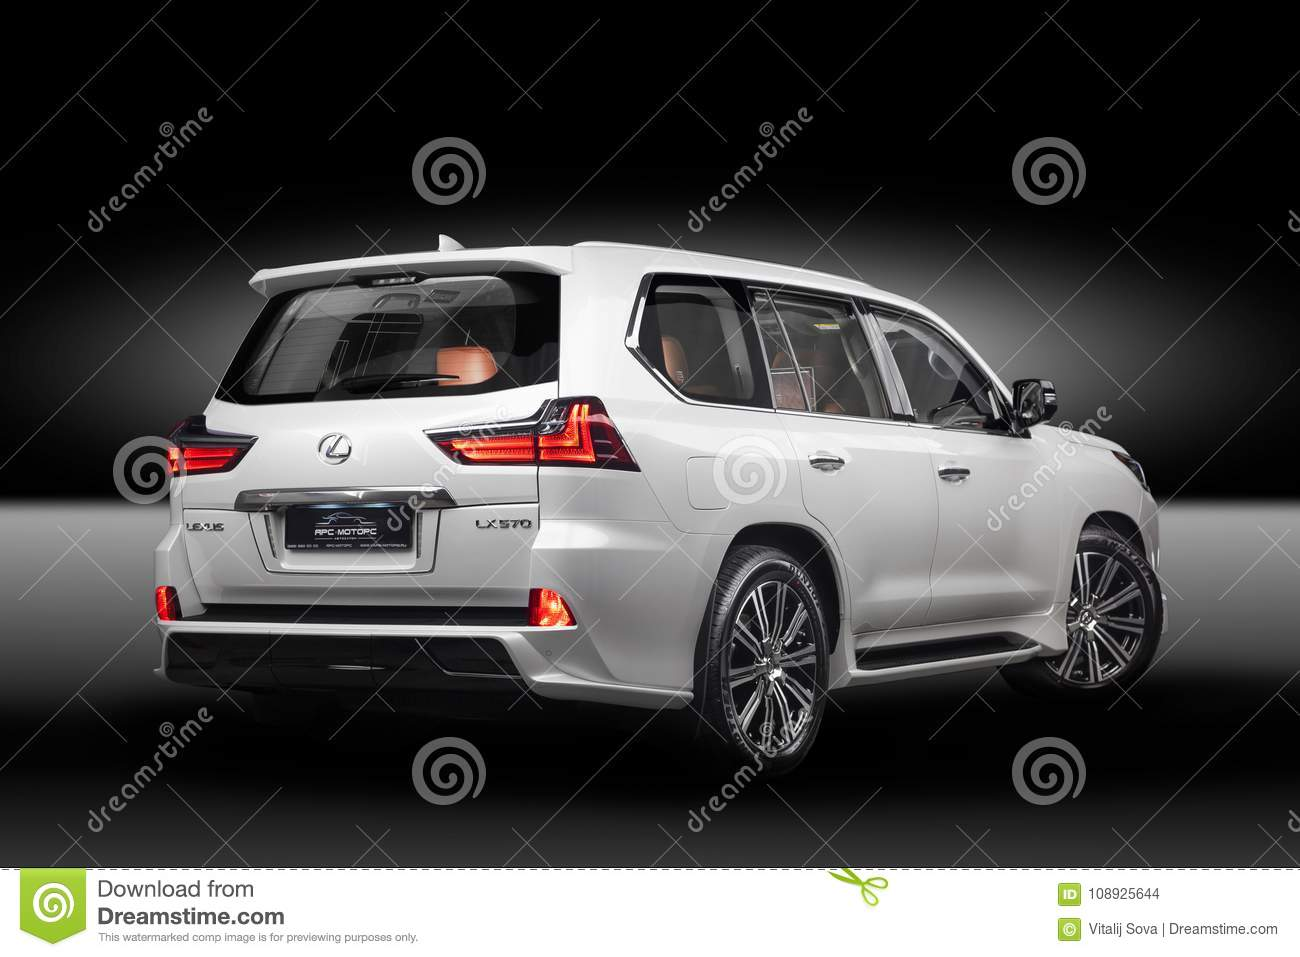 Lexus 570 Side View Editorial Stock Image Image Of Isolated 108925644